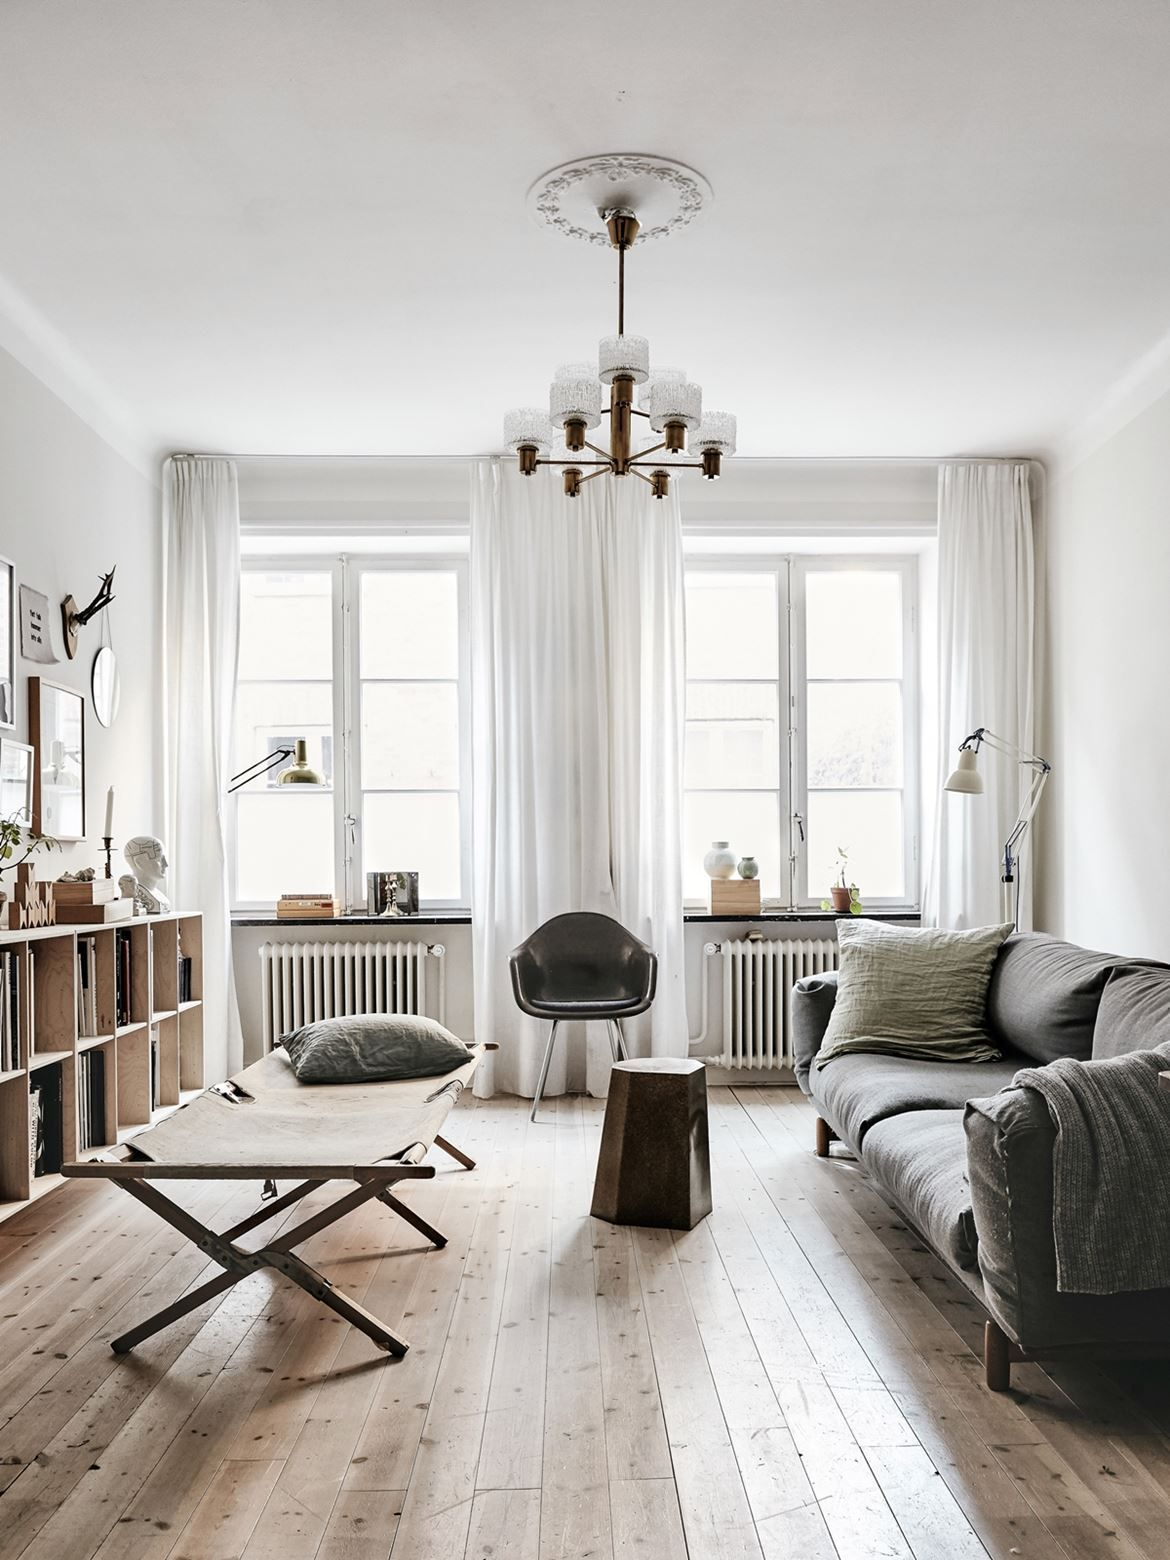 Cozy home with a vintage touch | Interior: Wohnzimmer | Pinterest ...